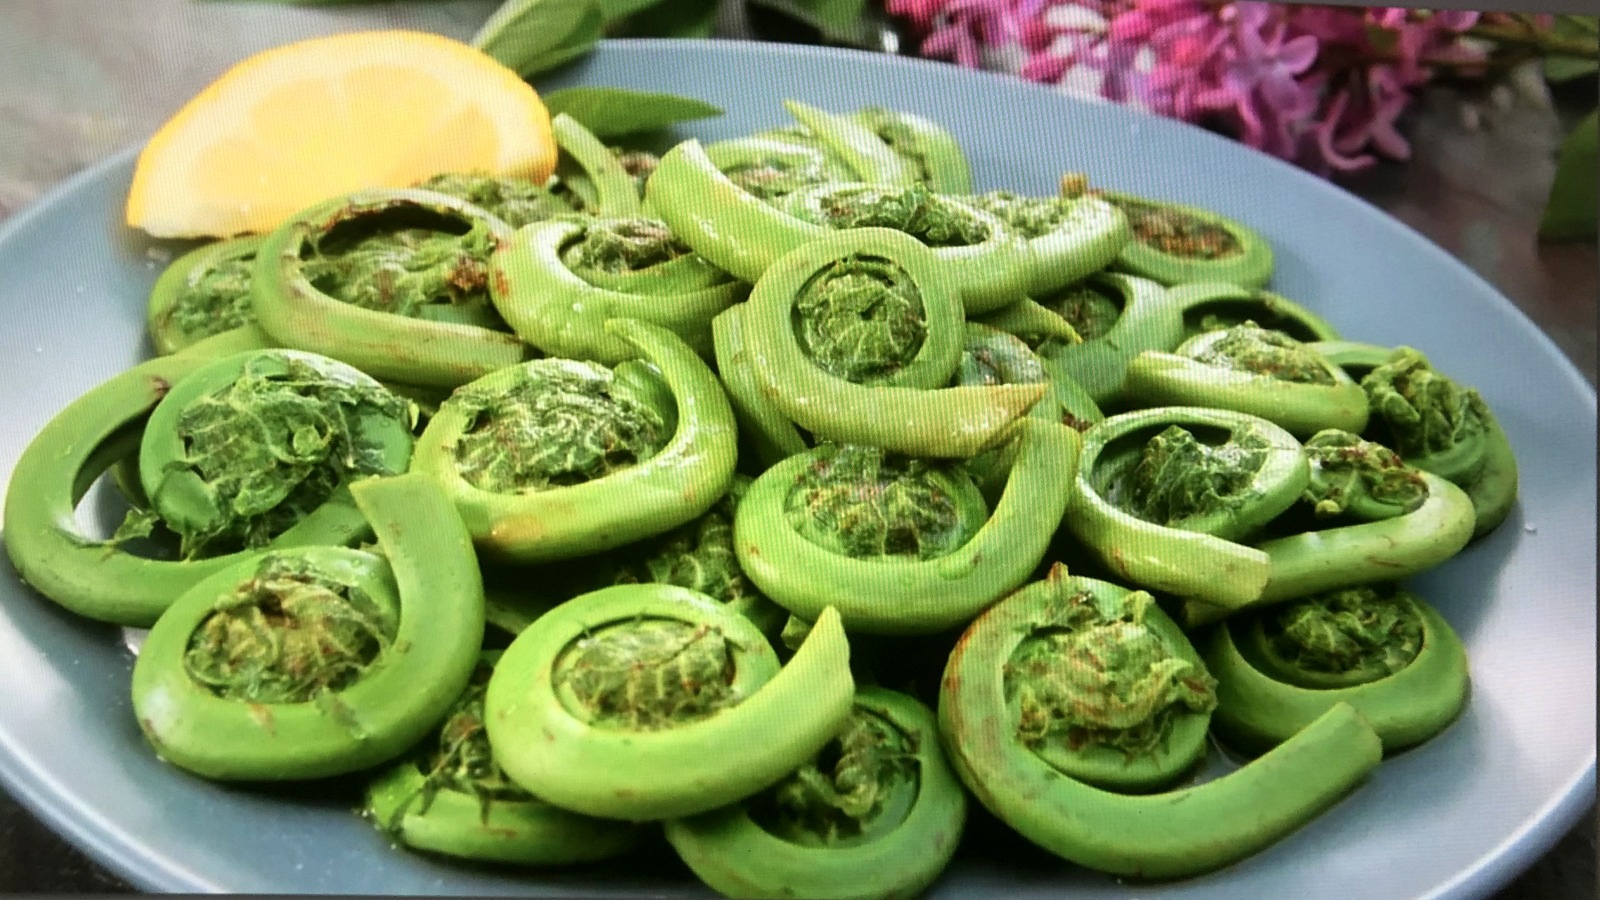 Fern fiddleheads, picked when they're curled tight, just before they start to unfurl, are tender and tasty. (thespruceeats.com)